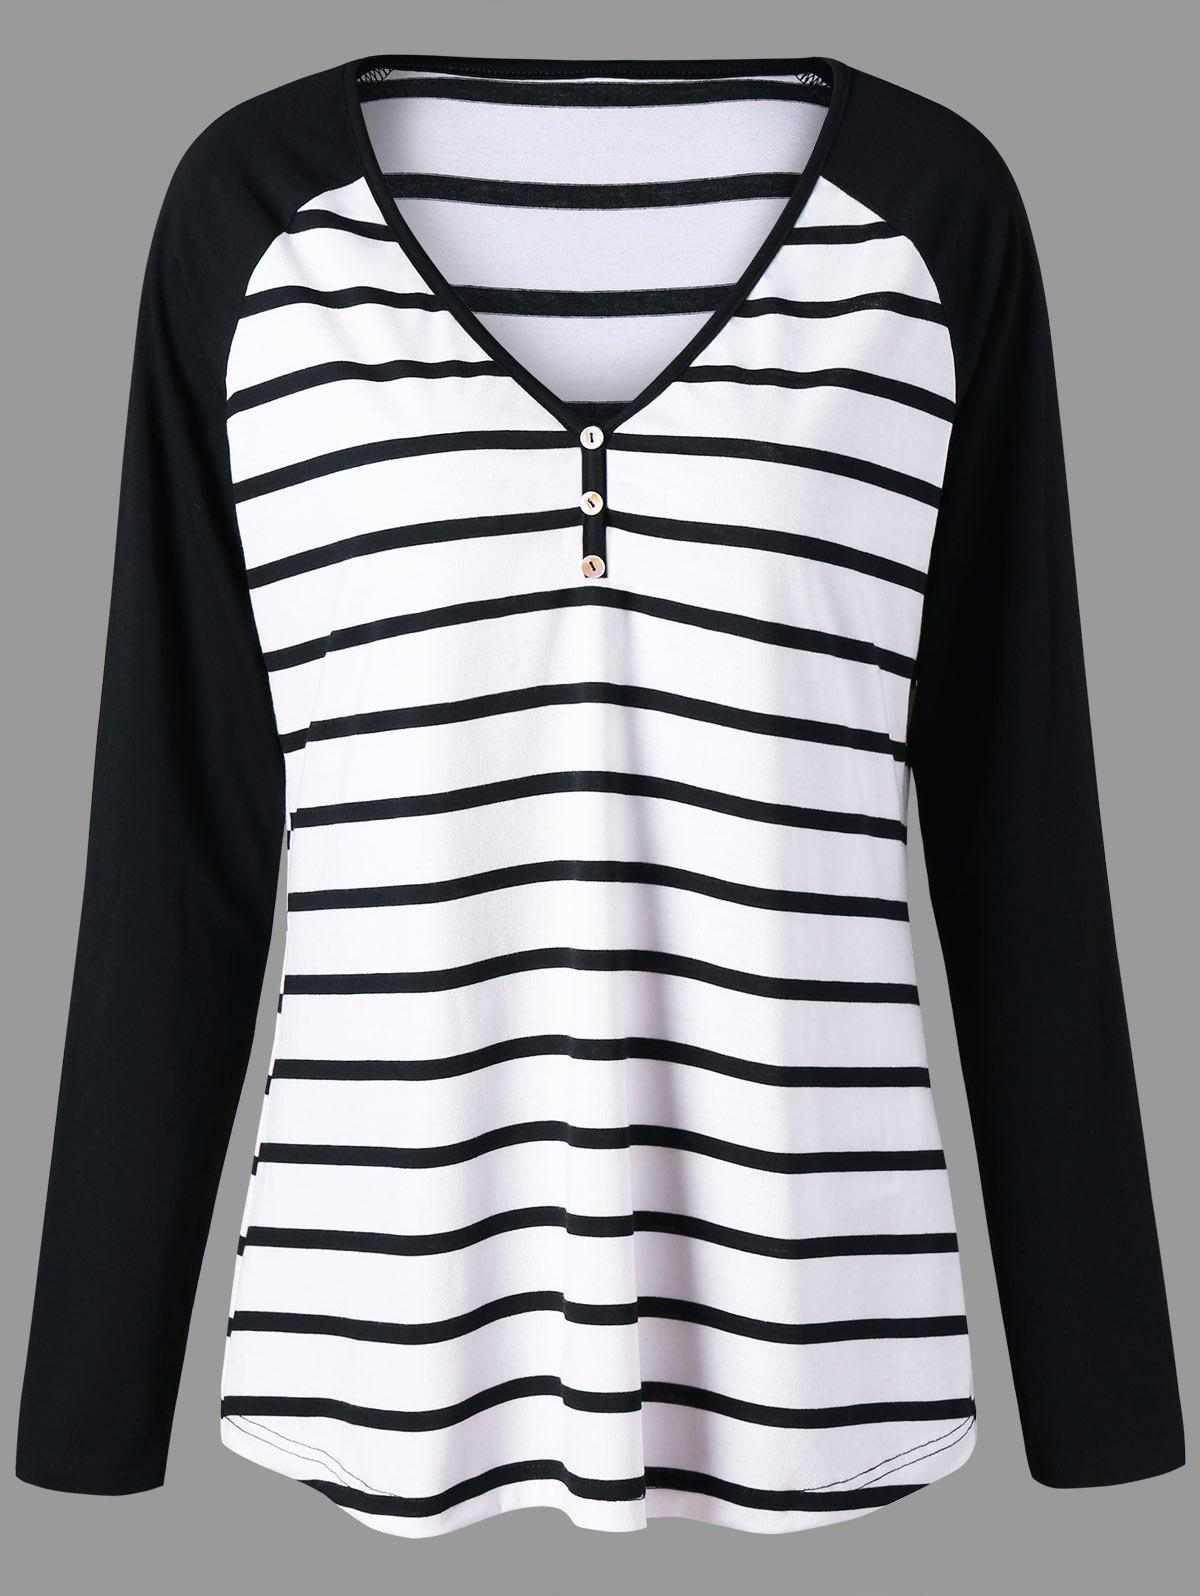 Plus Size Striped Raglan Sleeve TopWOMEN<br><br>Size: 2XL; Color: BLACK STRIPE; Material: Polyester,Spandex; Shirt Length: Long; Sleeve Length: Full; Collar: V-Neck; Style: Casual; Season: Fall,Spring; Pattern Type: Striped; Weight: 0.2700kg; Package Contents: 1 x Top;